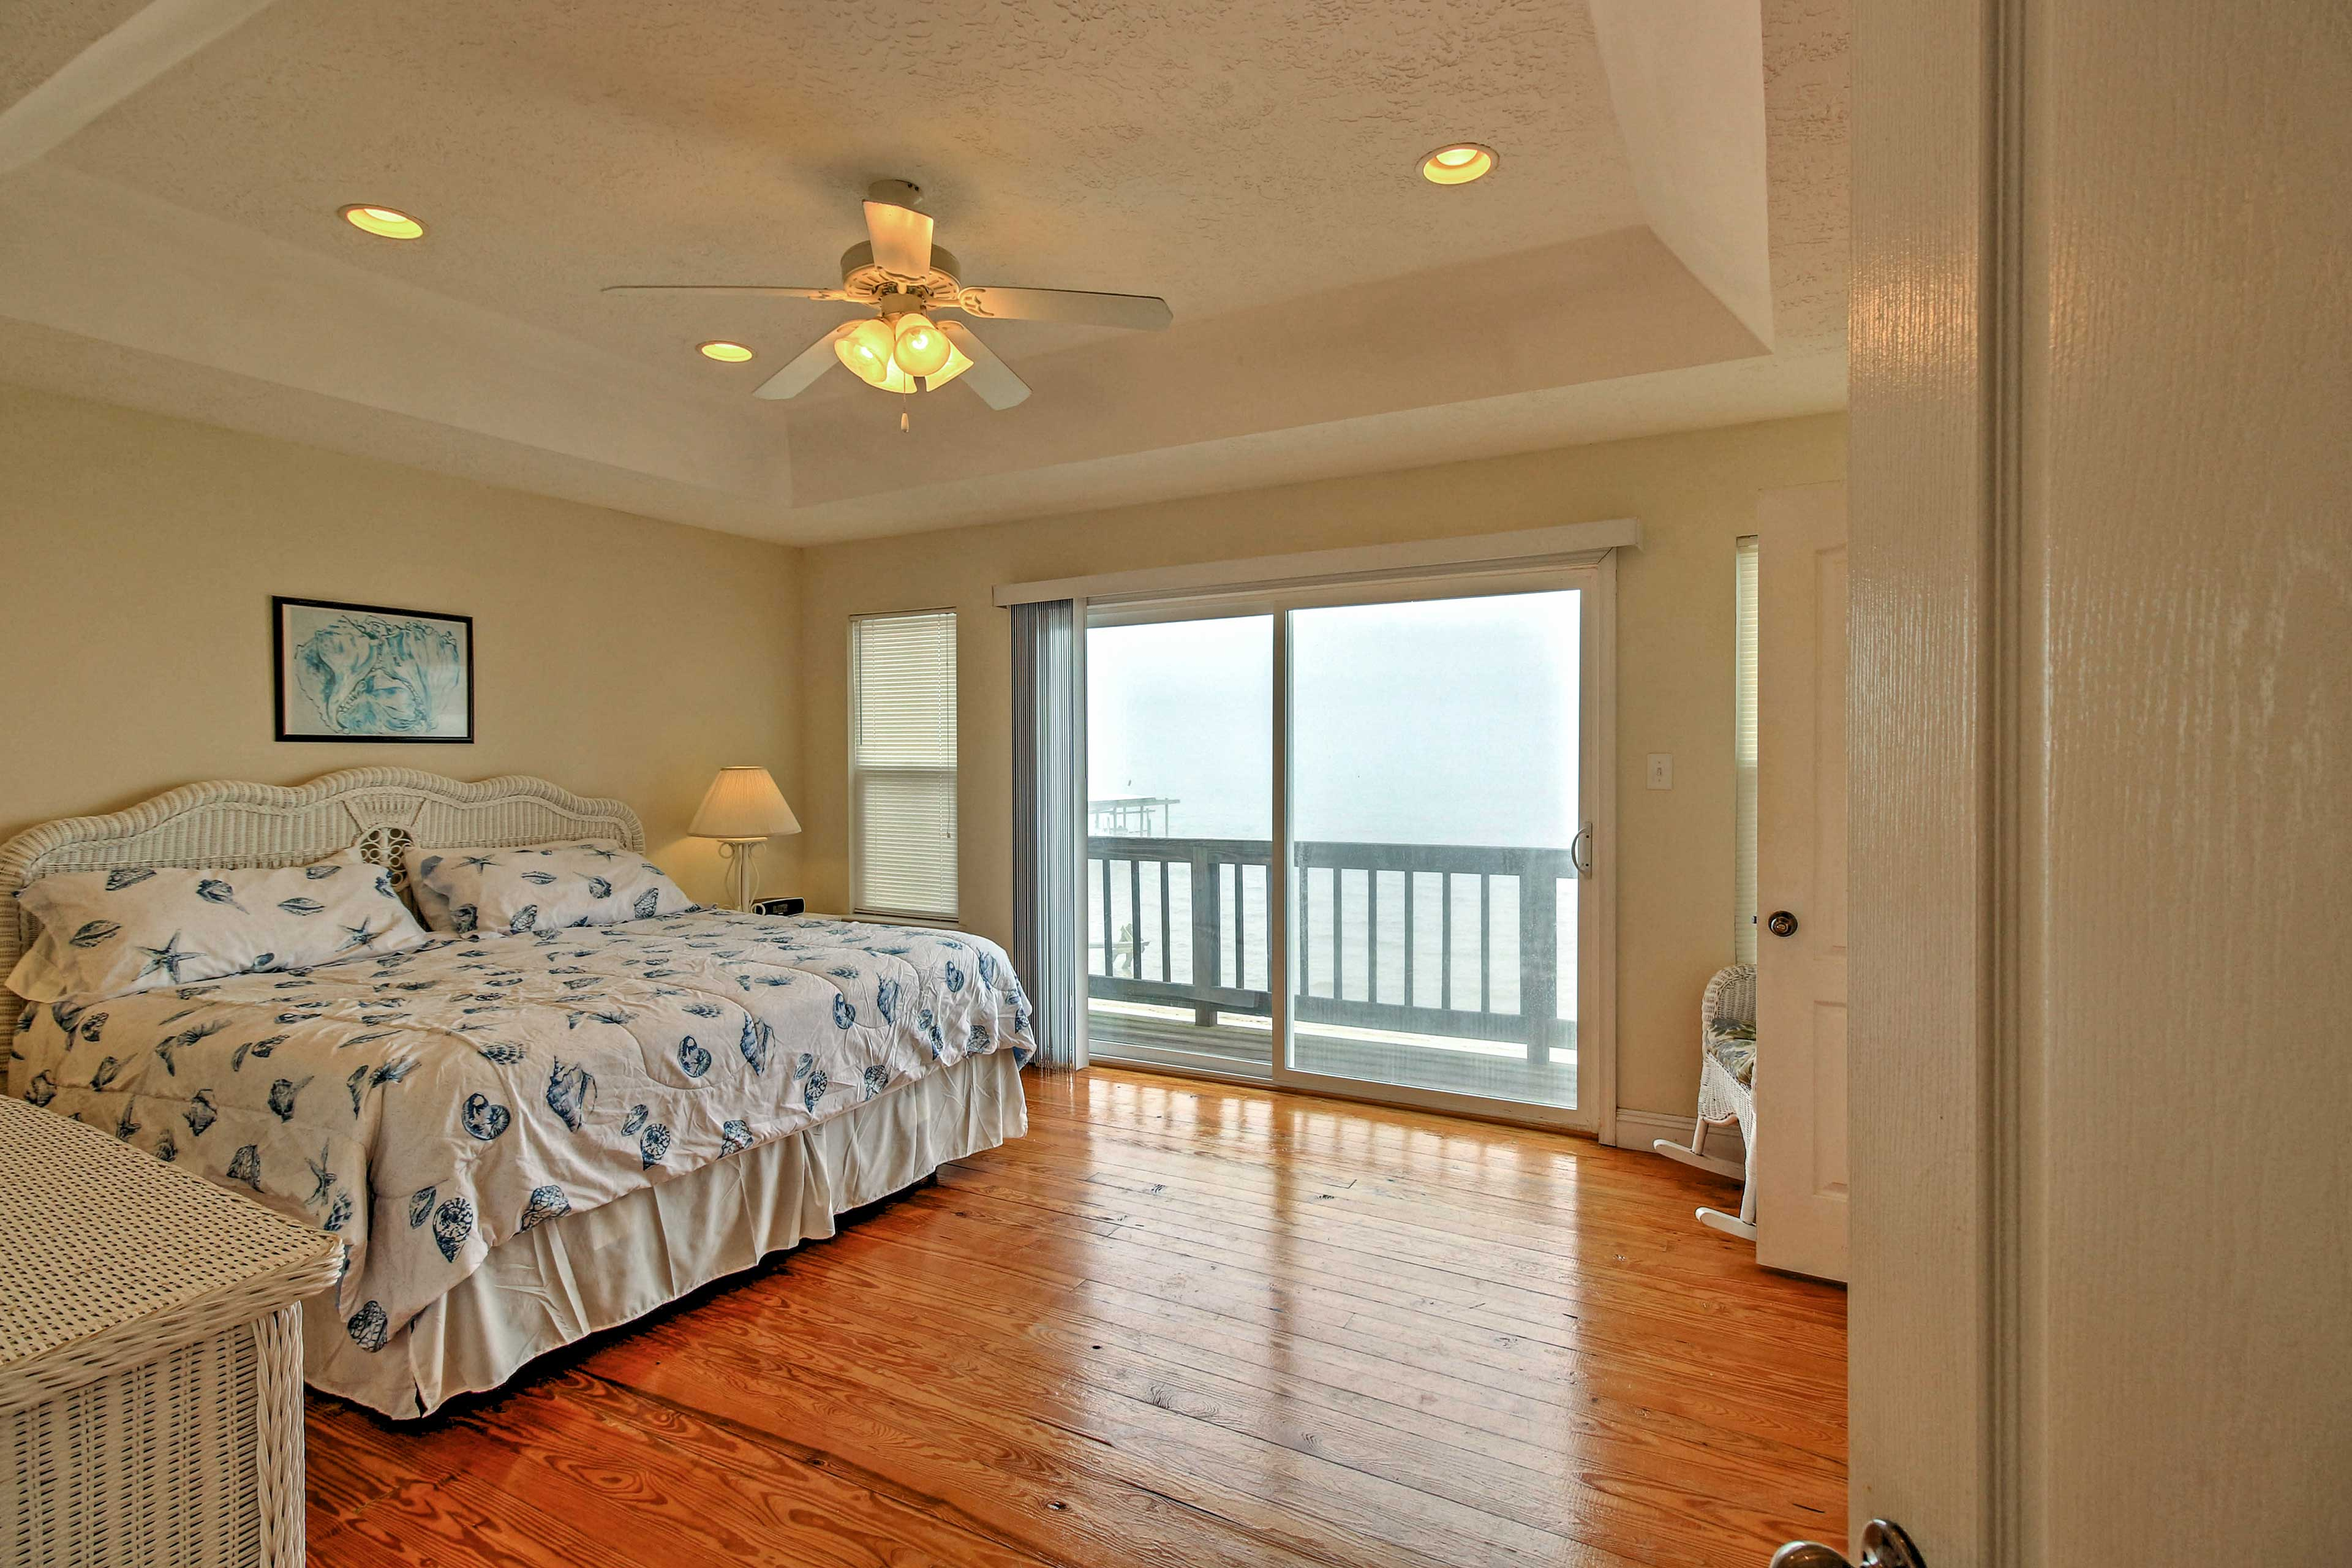 Retreat to the master suite, offering stunning views and serenity.